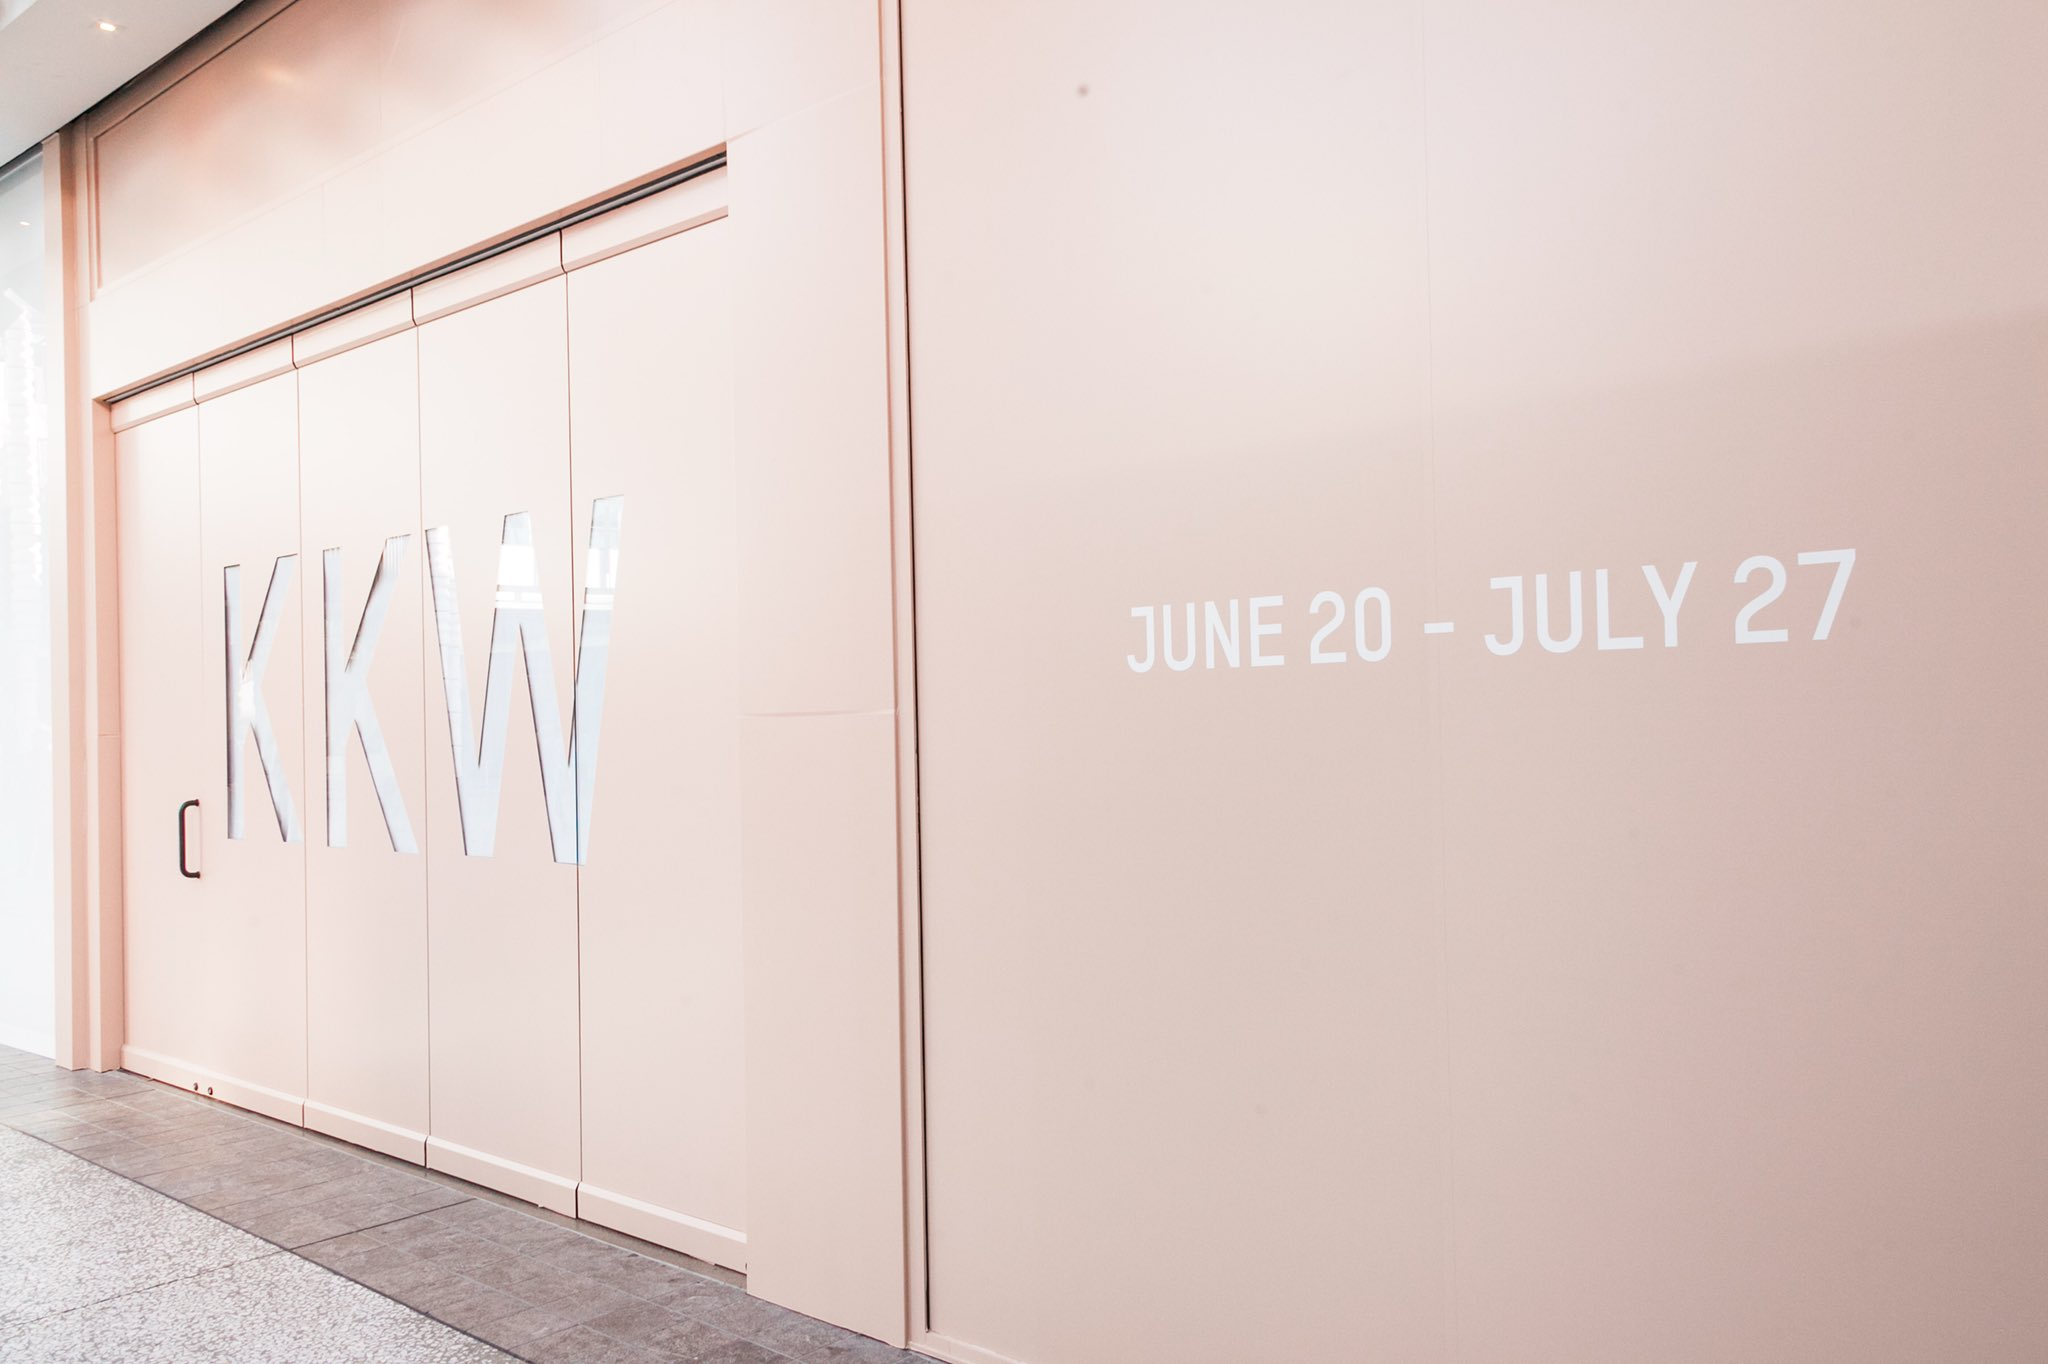 KKW BEAUTY POP-UP OPENS TOMORROW, JUNE 20 @ 10AM PST AT WESTFIELD CENTURY CITY IN LOS ANGELES ❤️ https://t.co/ryXtzxPF0X